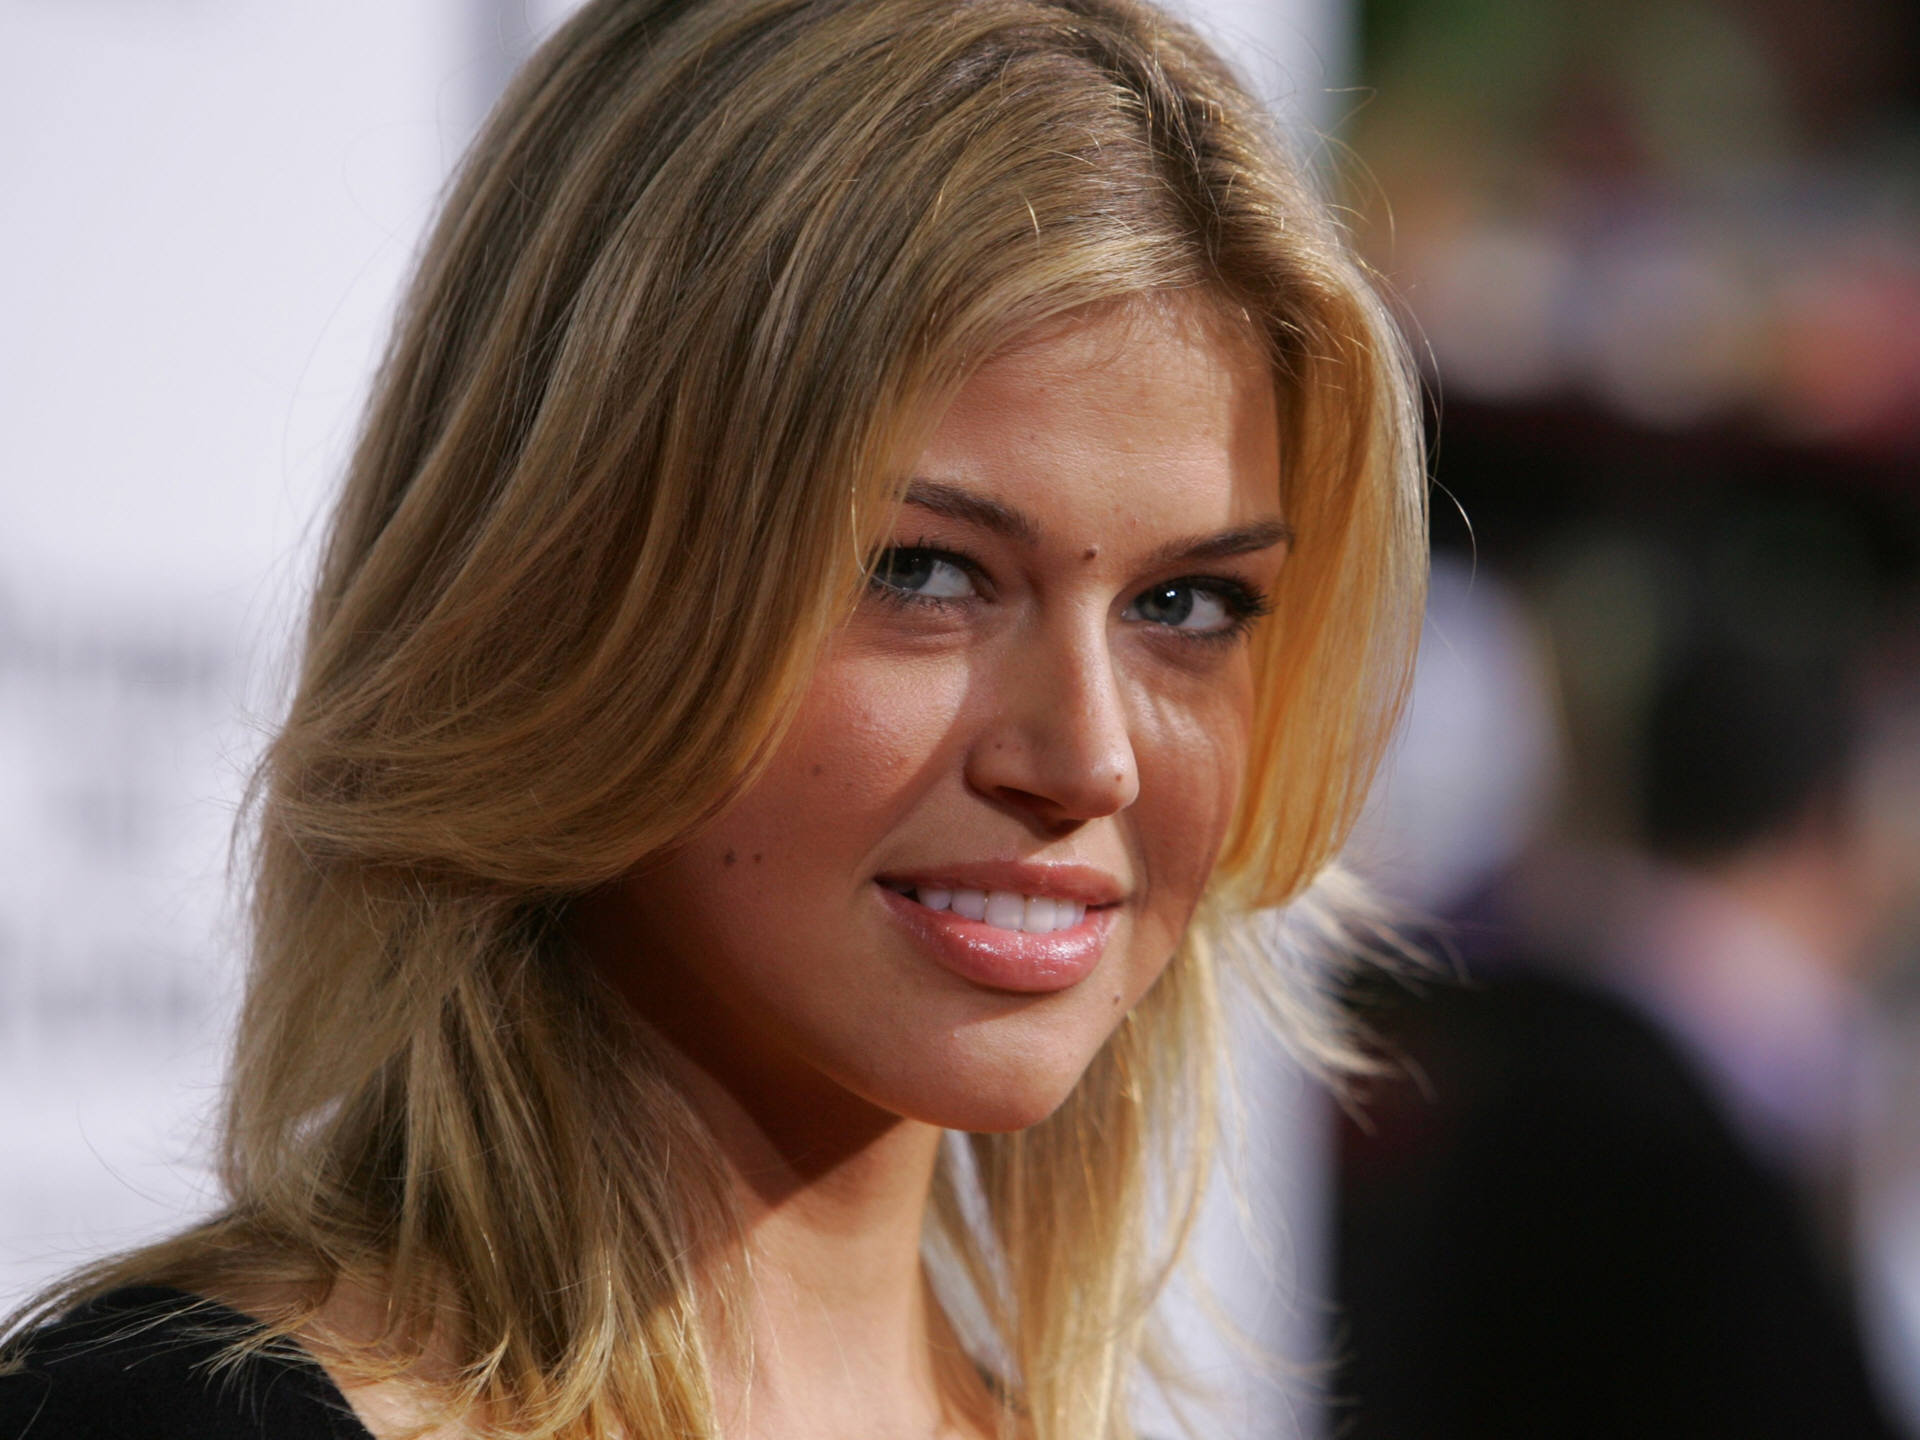 http://images1.fanpop.com/images/photos/1400000/Adrianne-adrianne-palicki-1475890-1920-1440.jpg